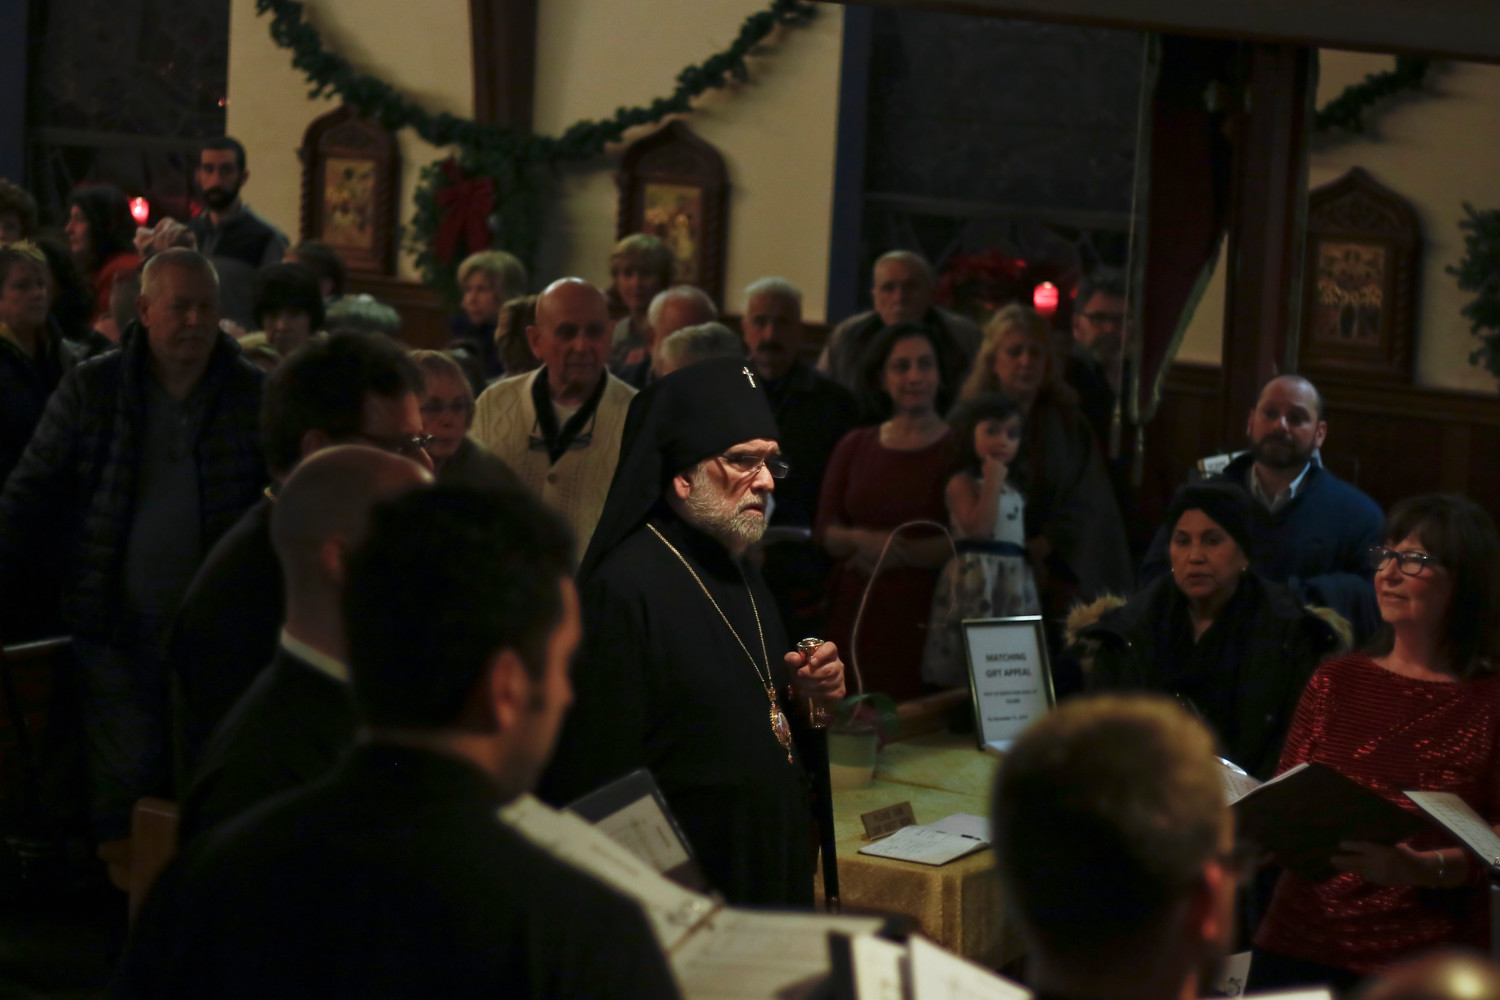 His Eminence Archbishop Michael Dahulich, of the Diocese of New York and New Jersey, joined the audience in singing carols.